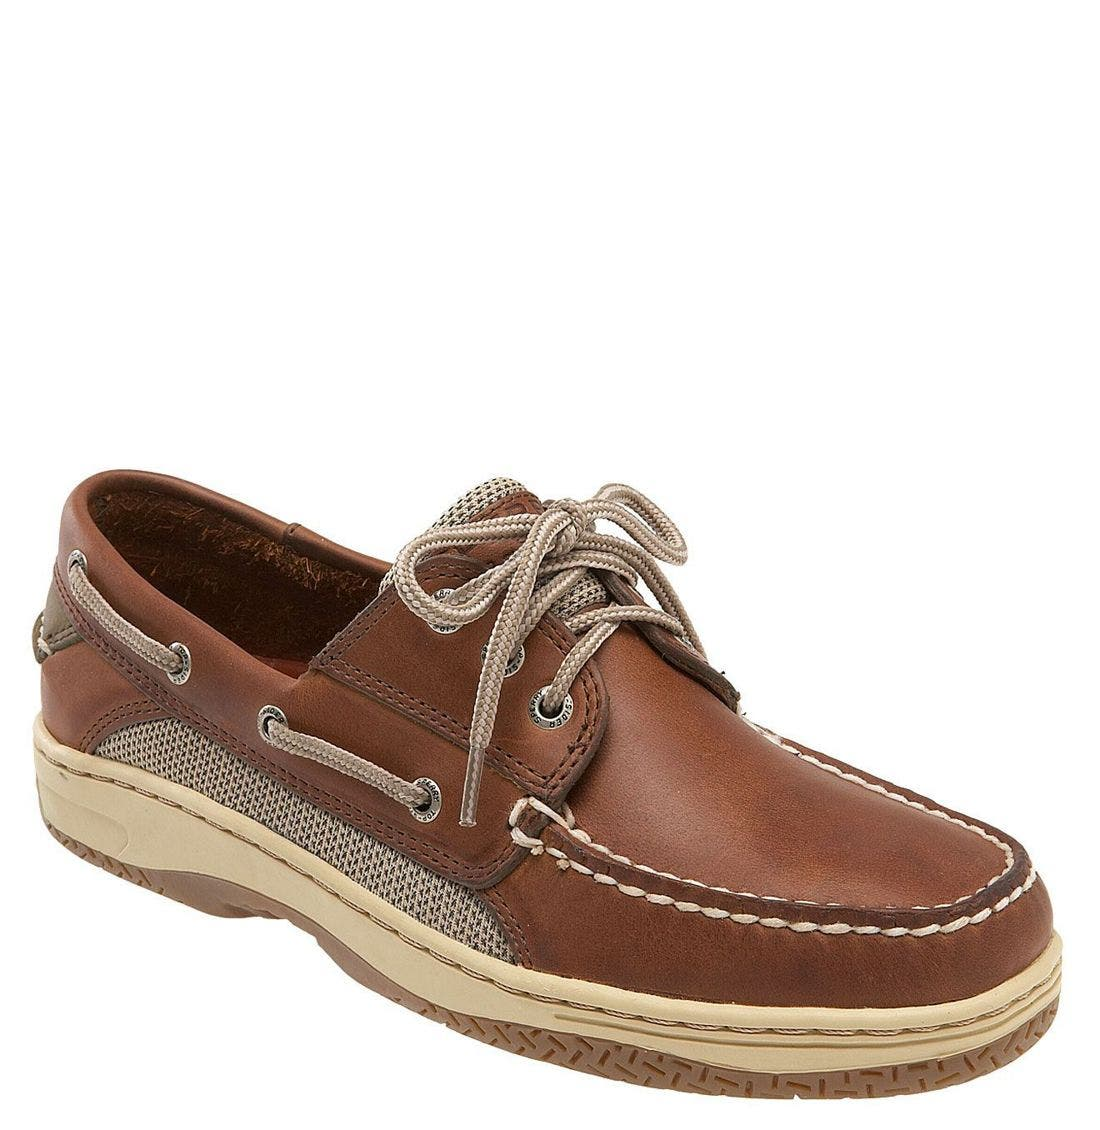 'Billfish' Boat Shoe, Main, color, Dark Tan